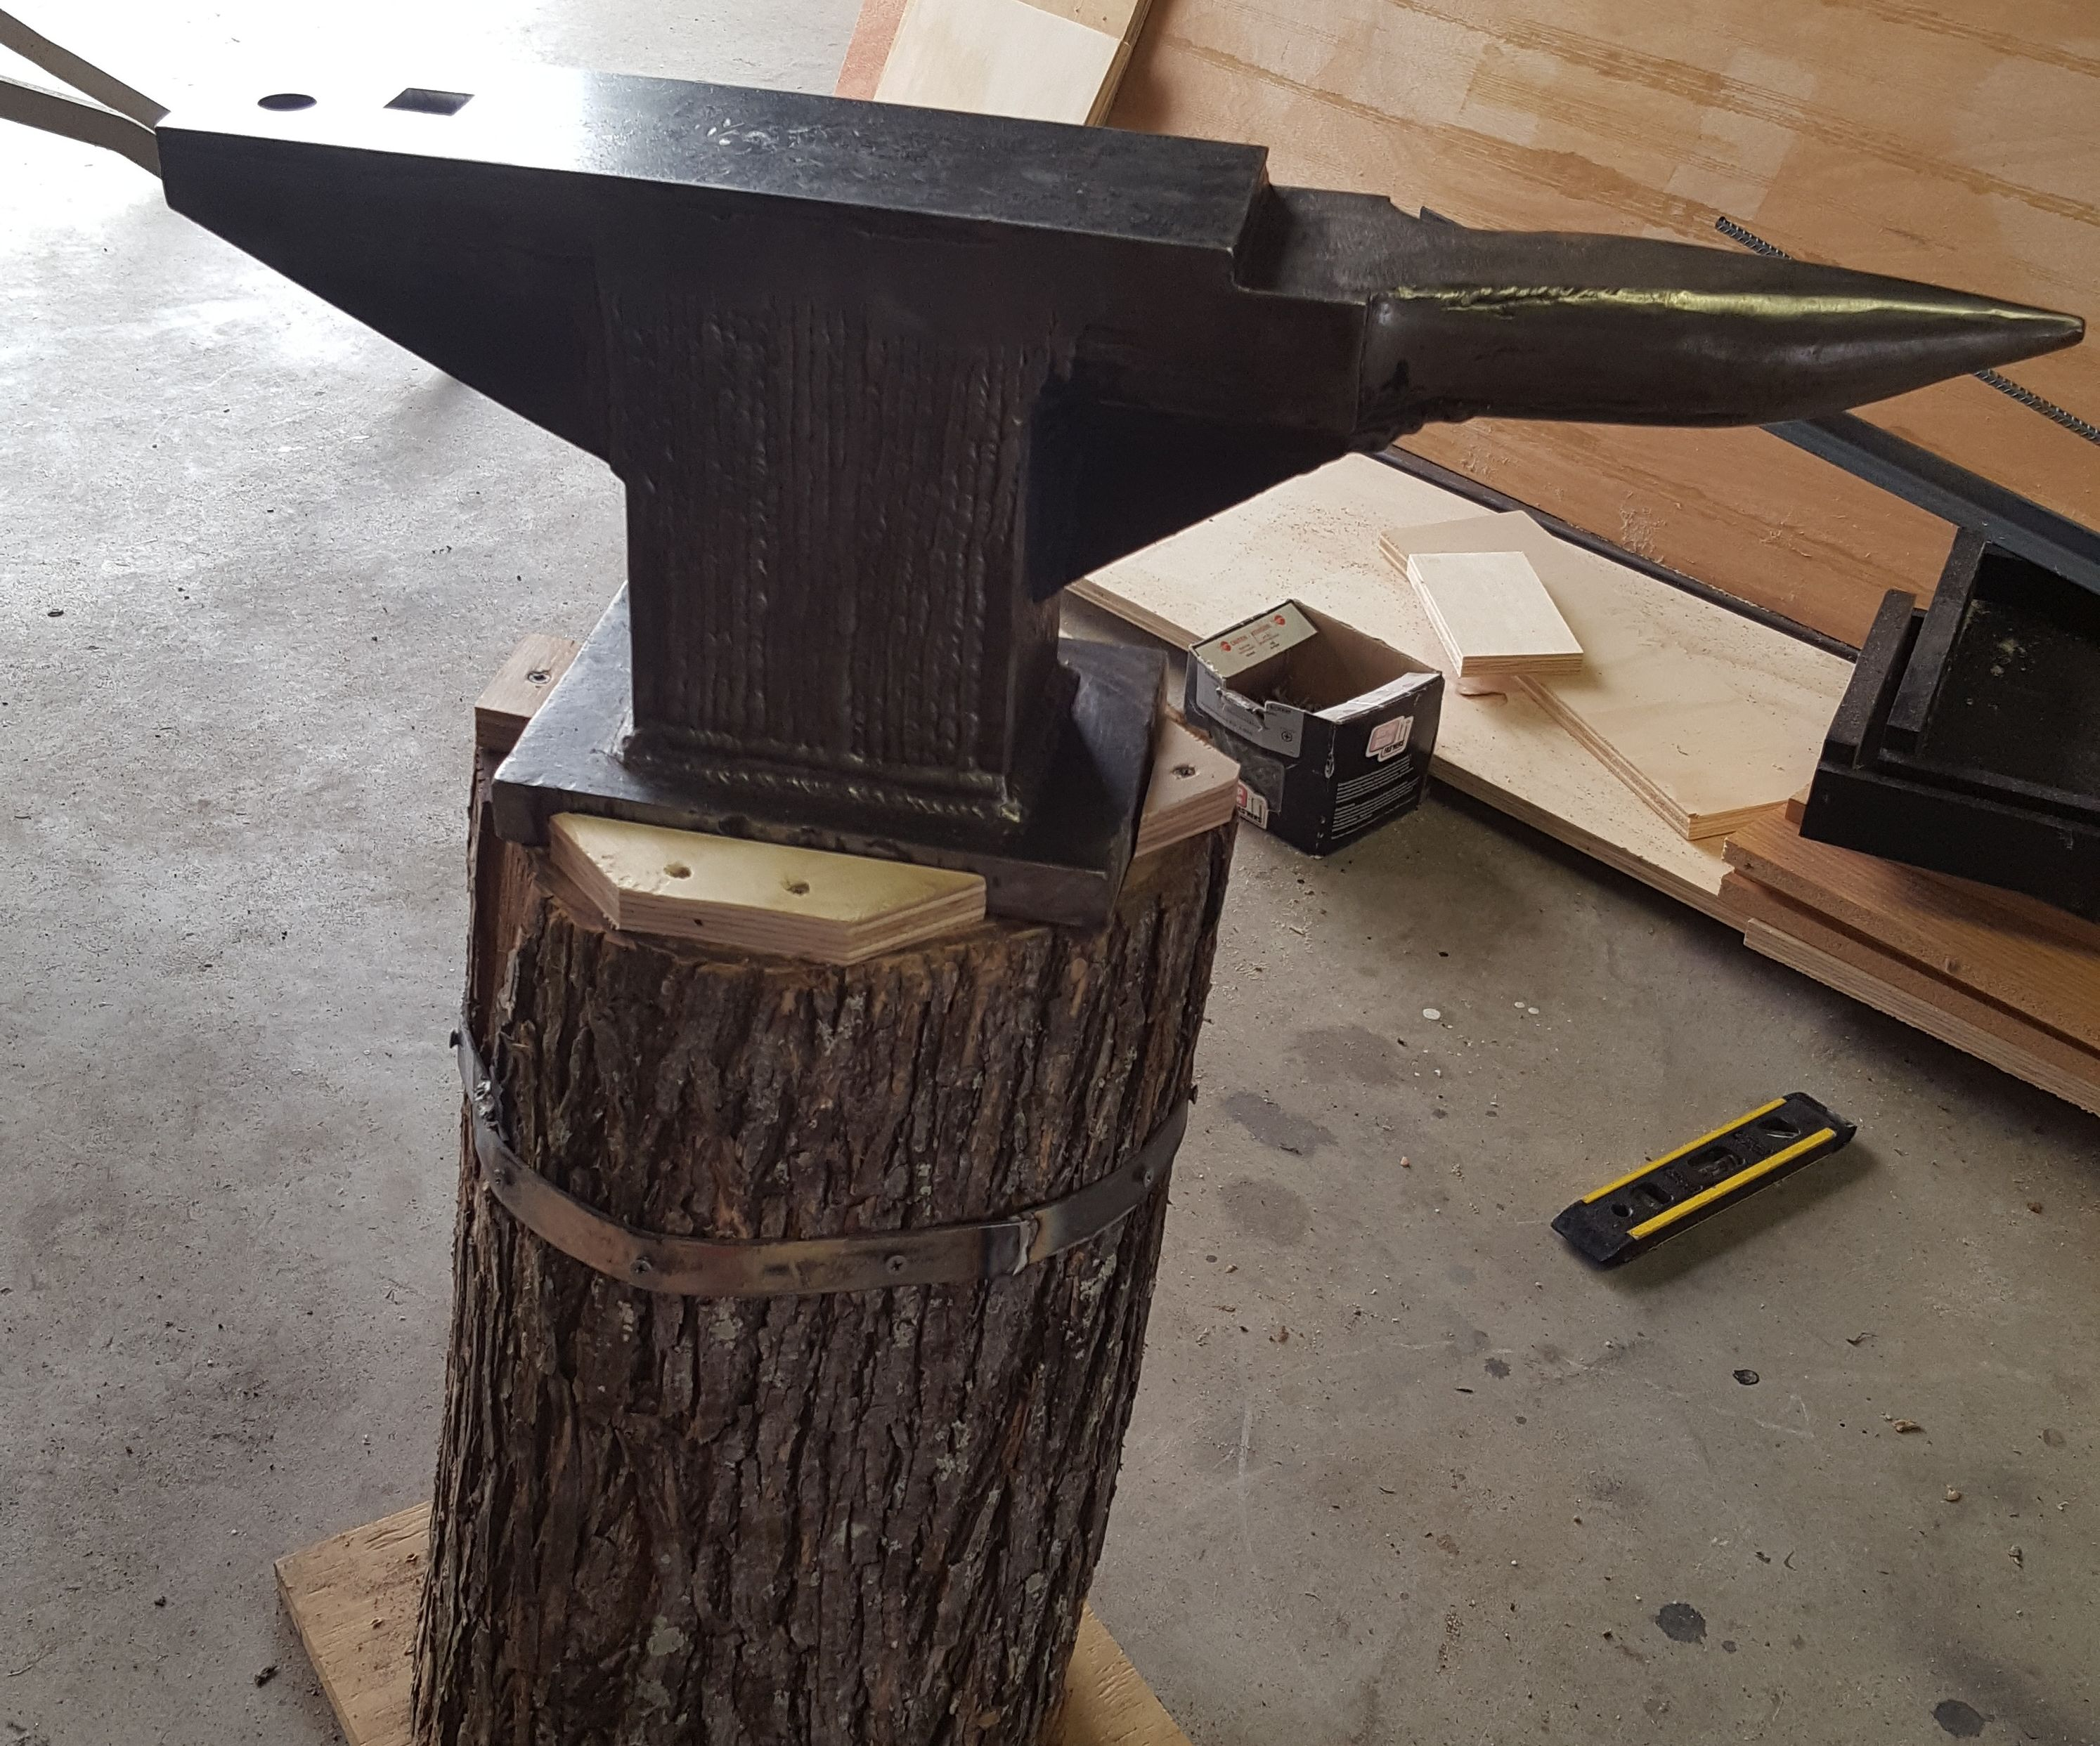 Home-made anvil